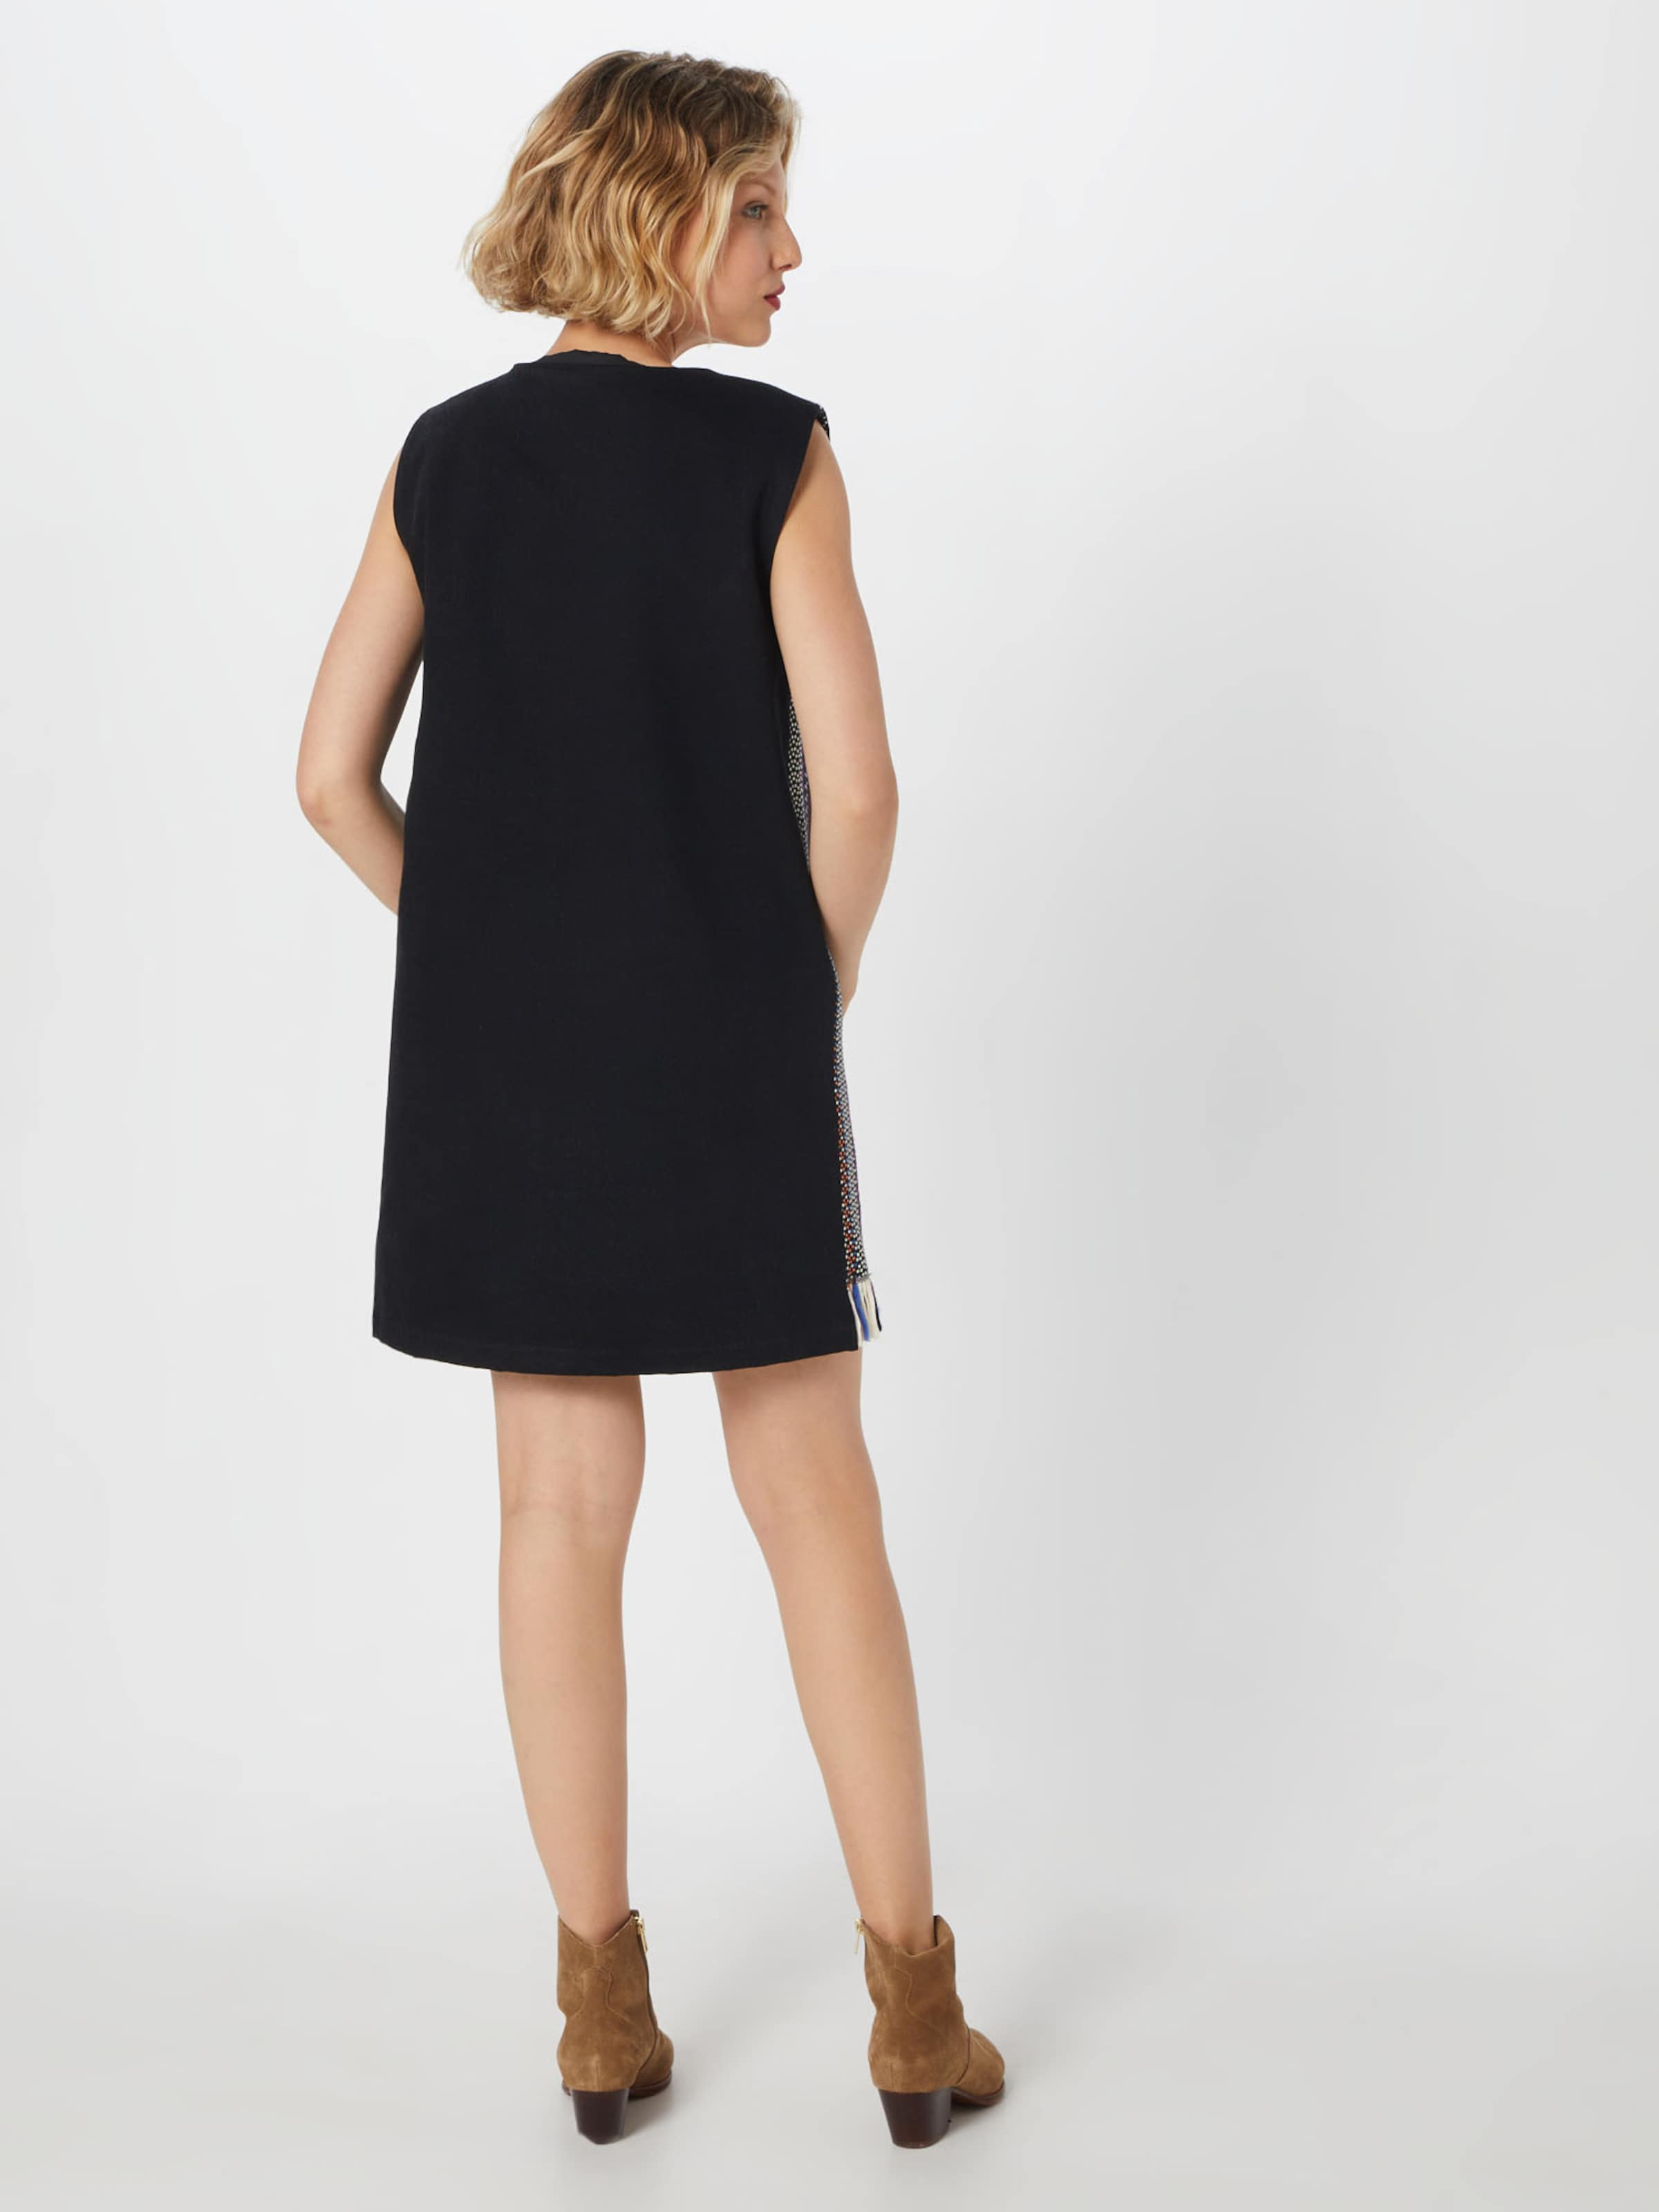 In Kleid Crafted Schwarz Madeamp; Levi's TJcFl1K